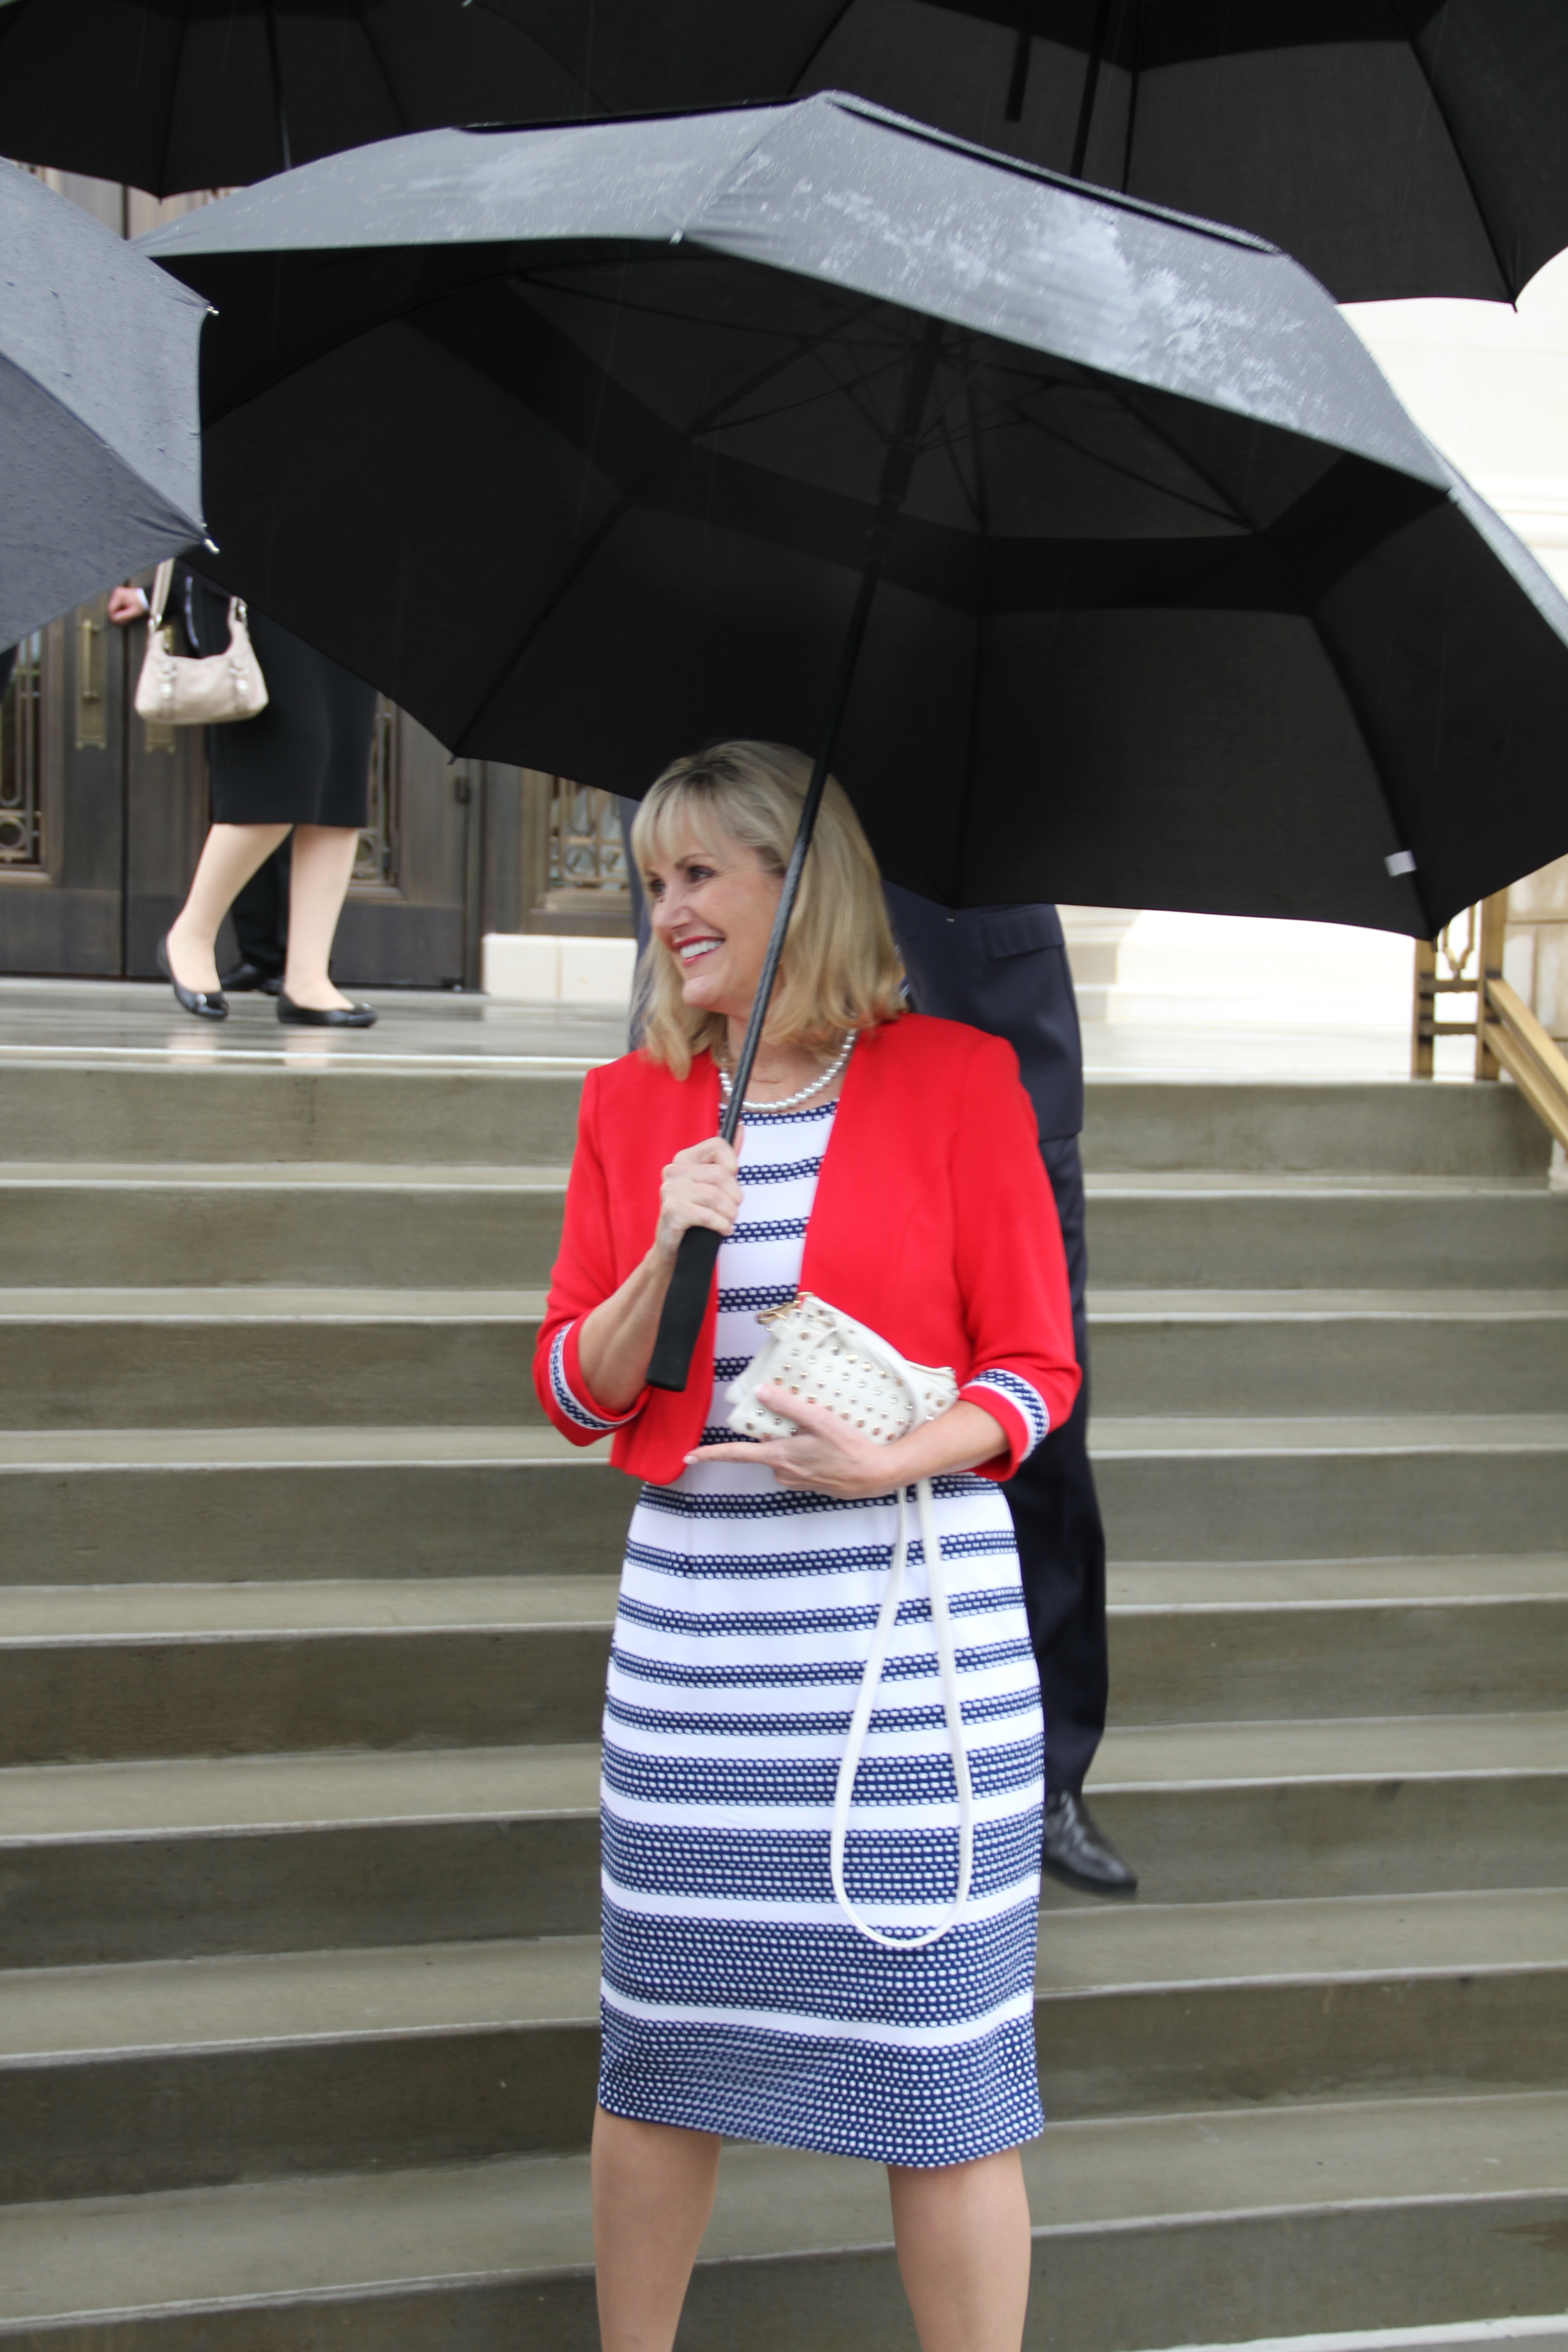 Sister Karen Beheshti exits the Memphis Tennessee Temple to rainy day in Memphis on May 4 after touring through the newly renovated temple.